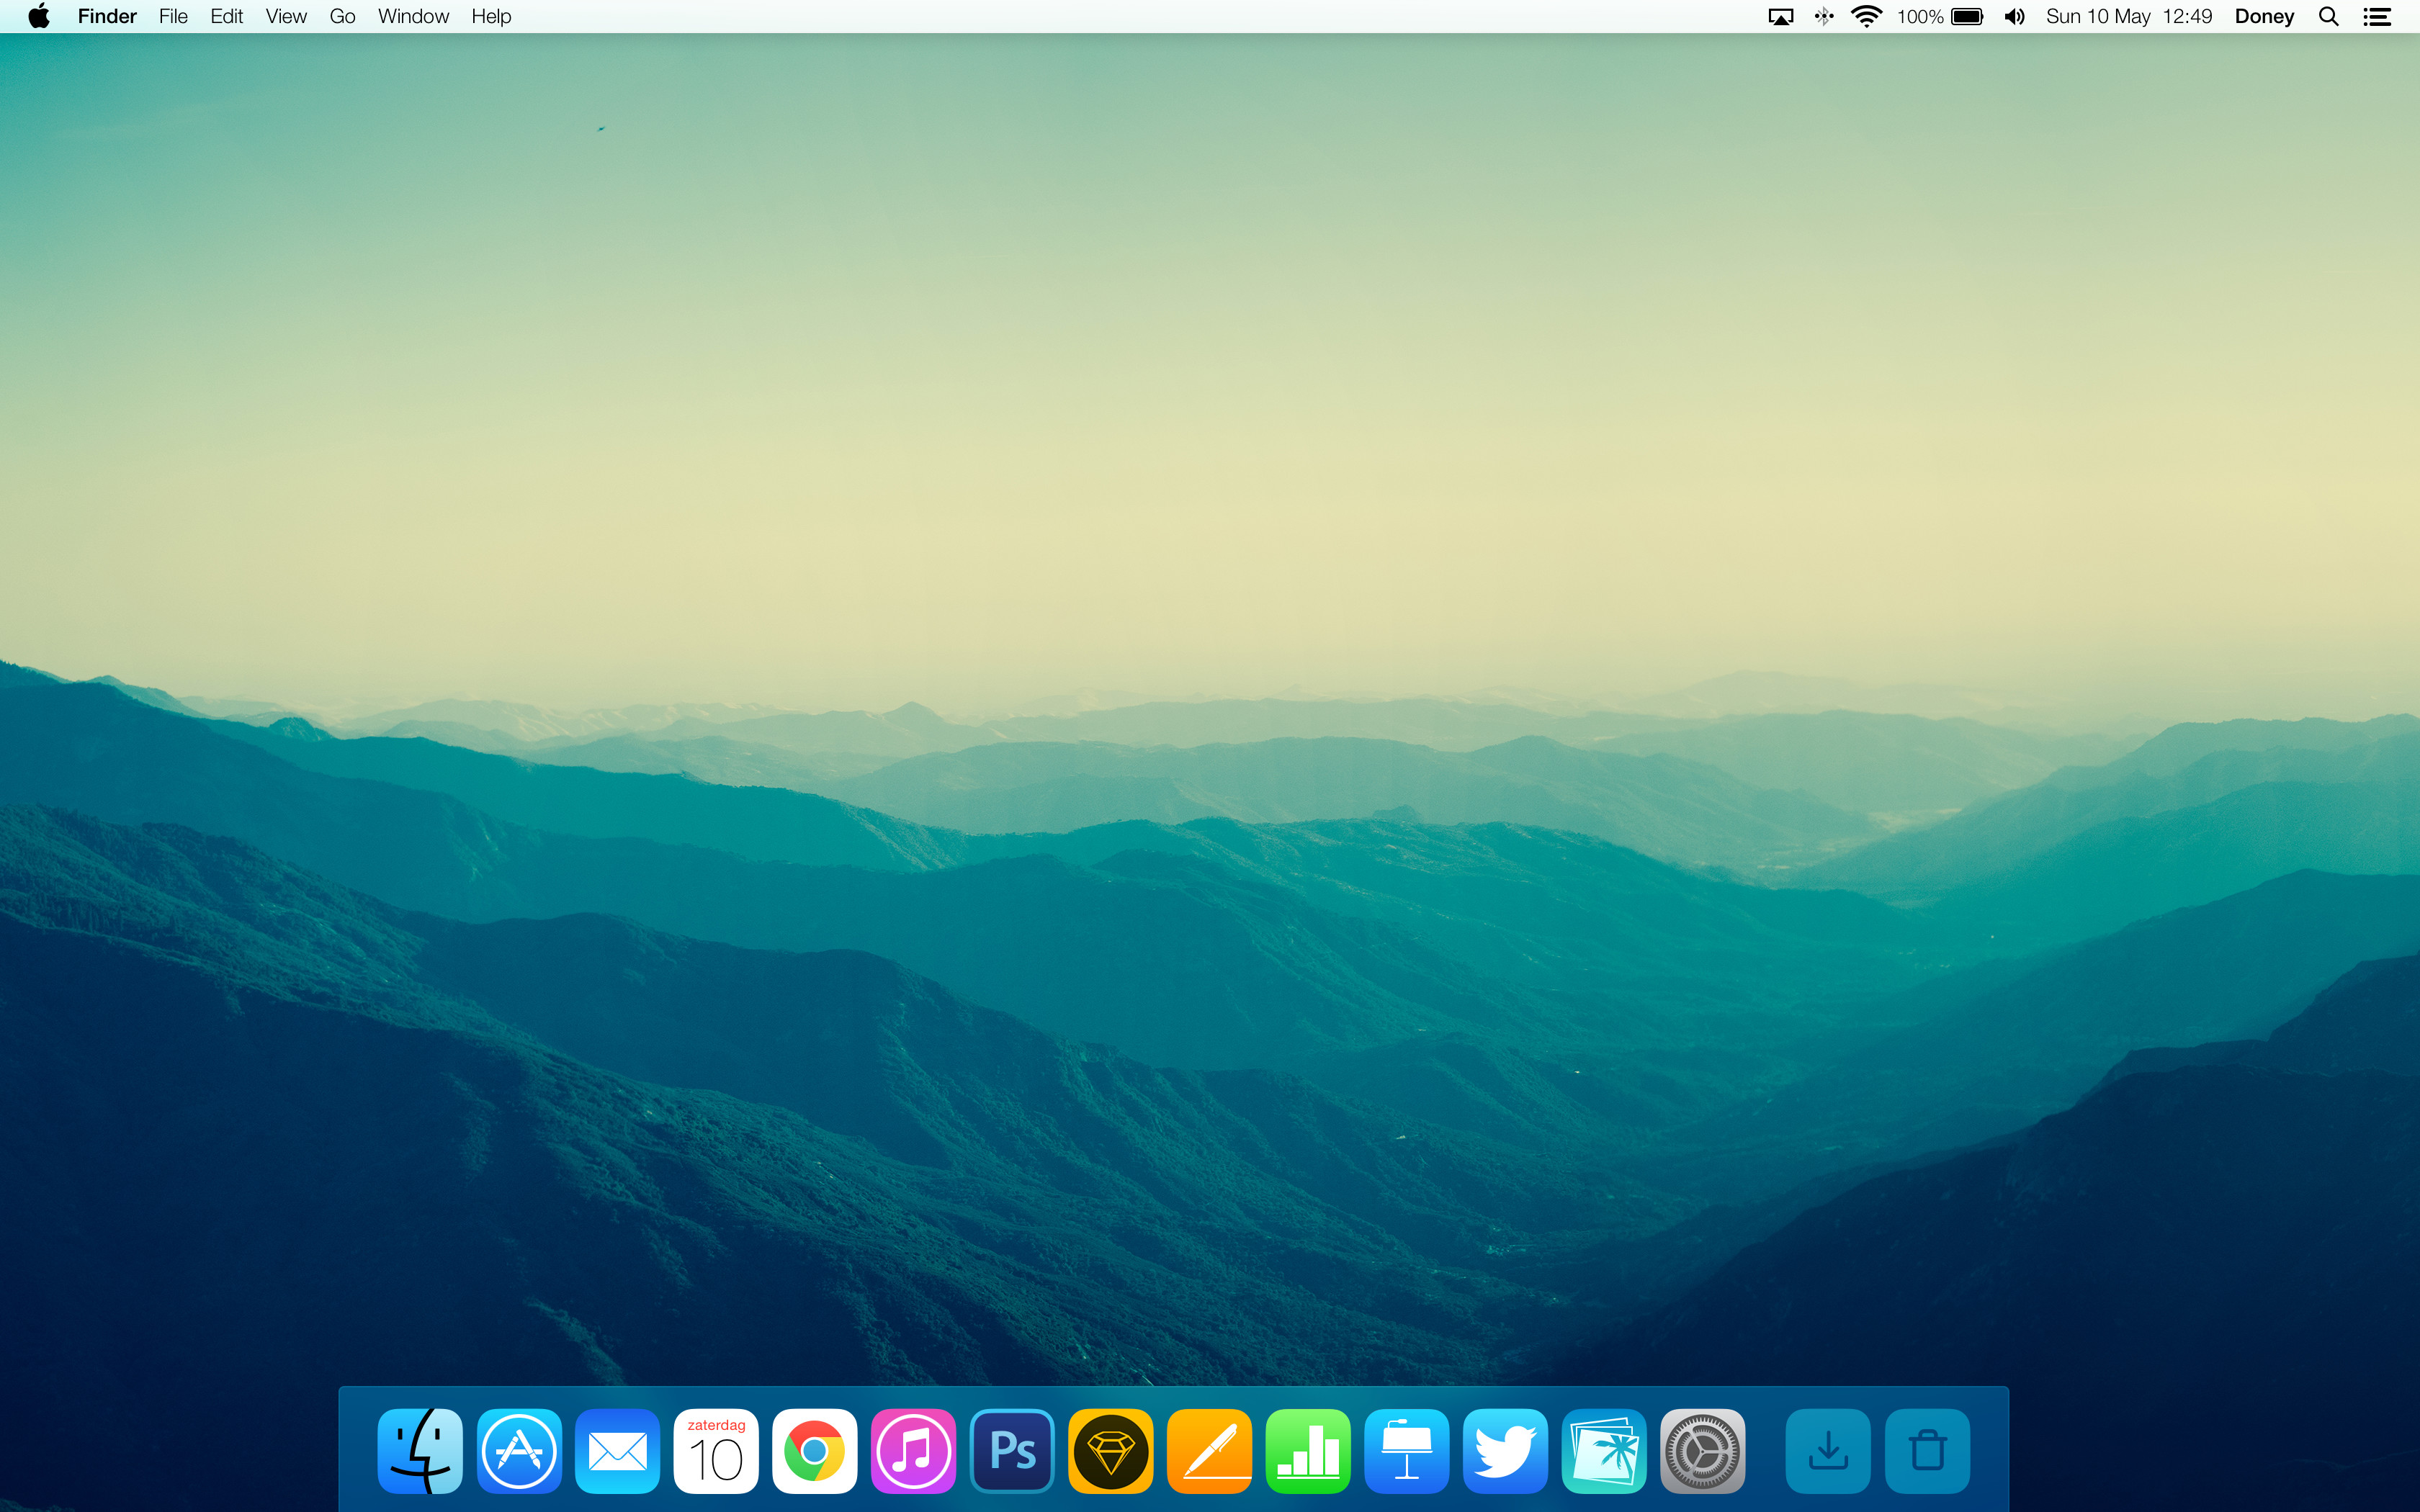 3360x2100 mac os x yosemite wallpaper #329599